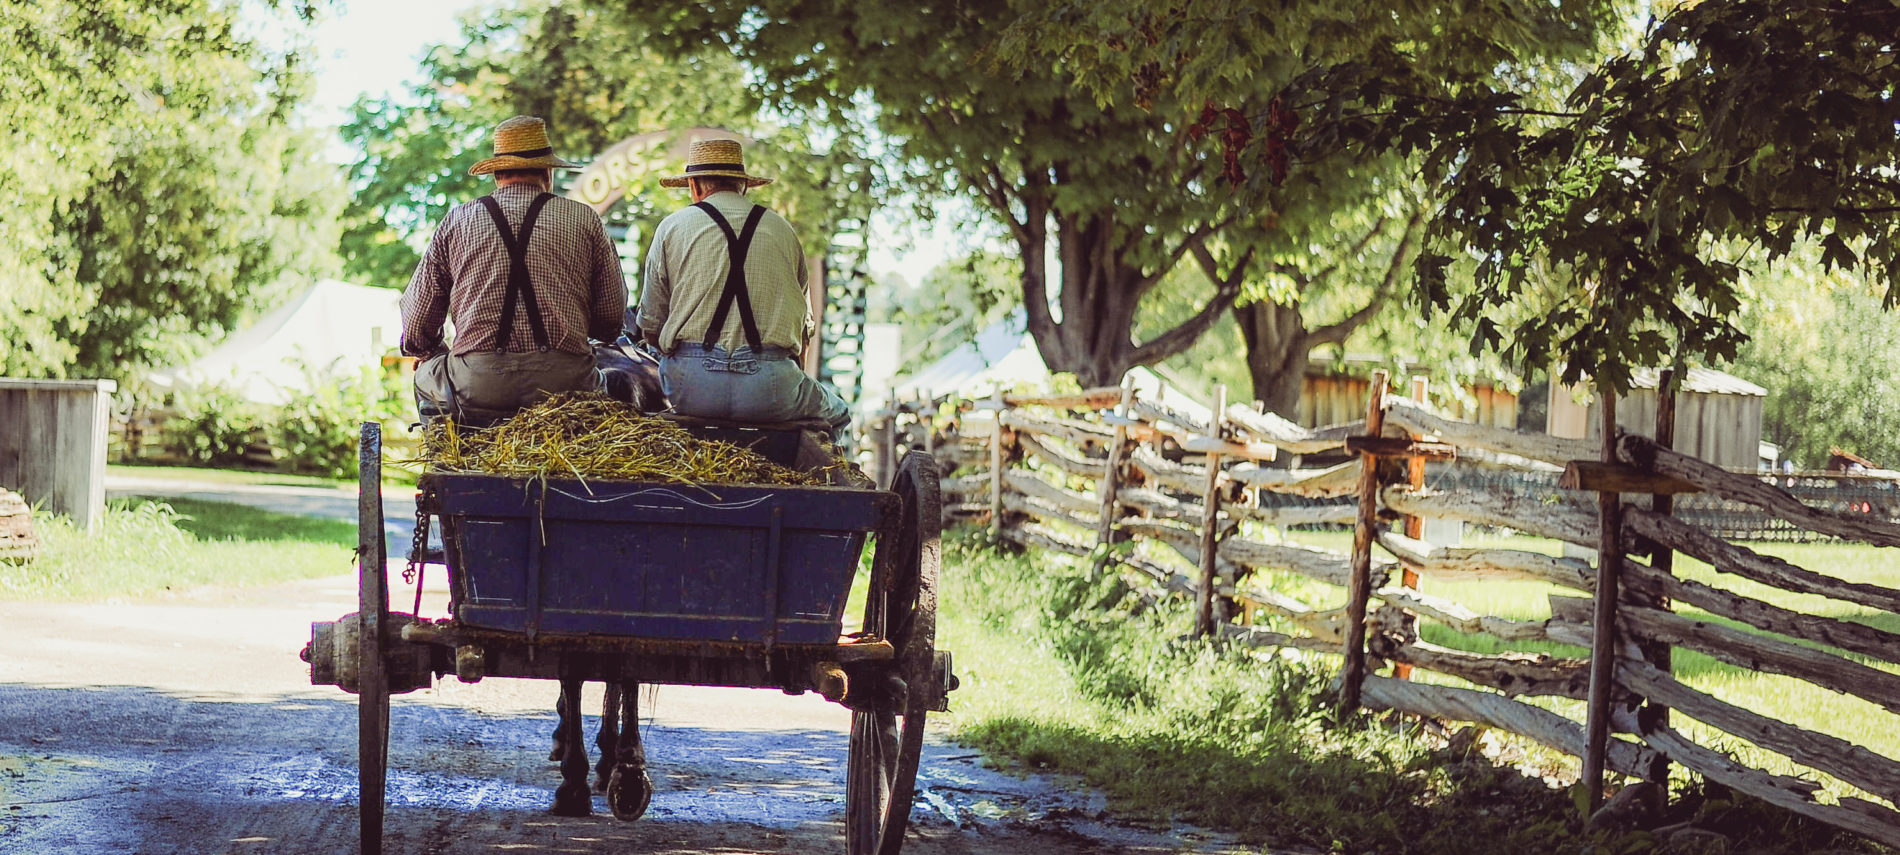 Amish buggy with two men wearing straw hats and suspenders riding in it, split rail fence on side of path.